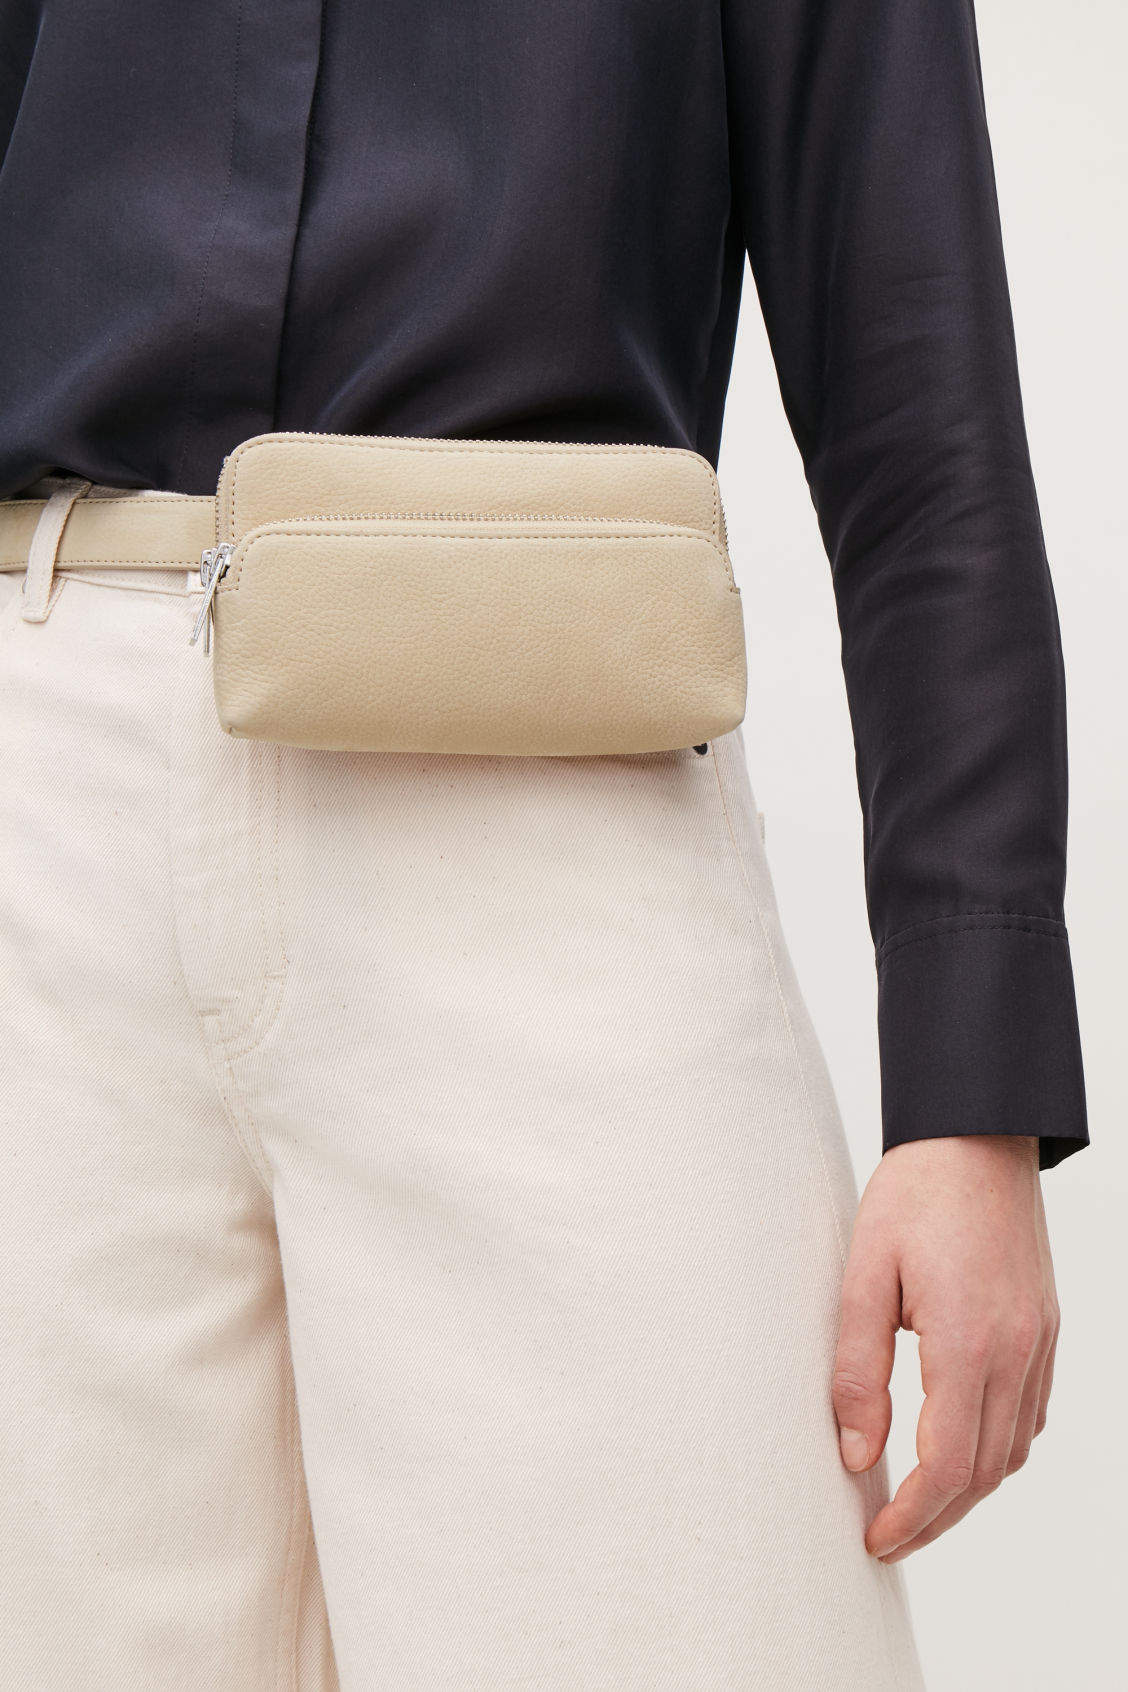 Detailed image of Cos leather purse belt bag  in beige